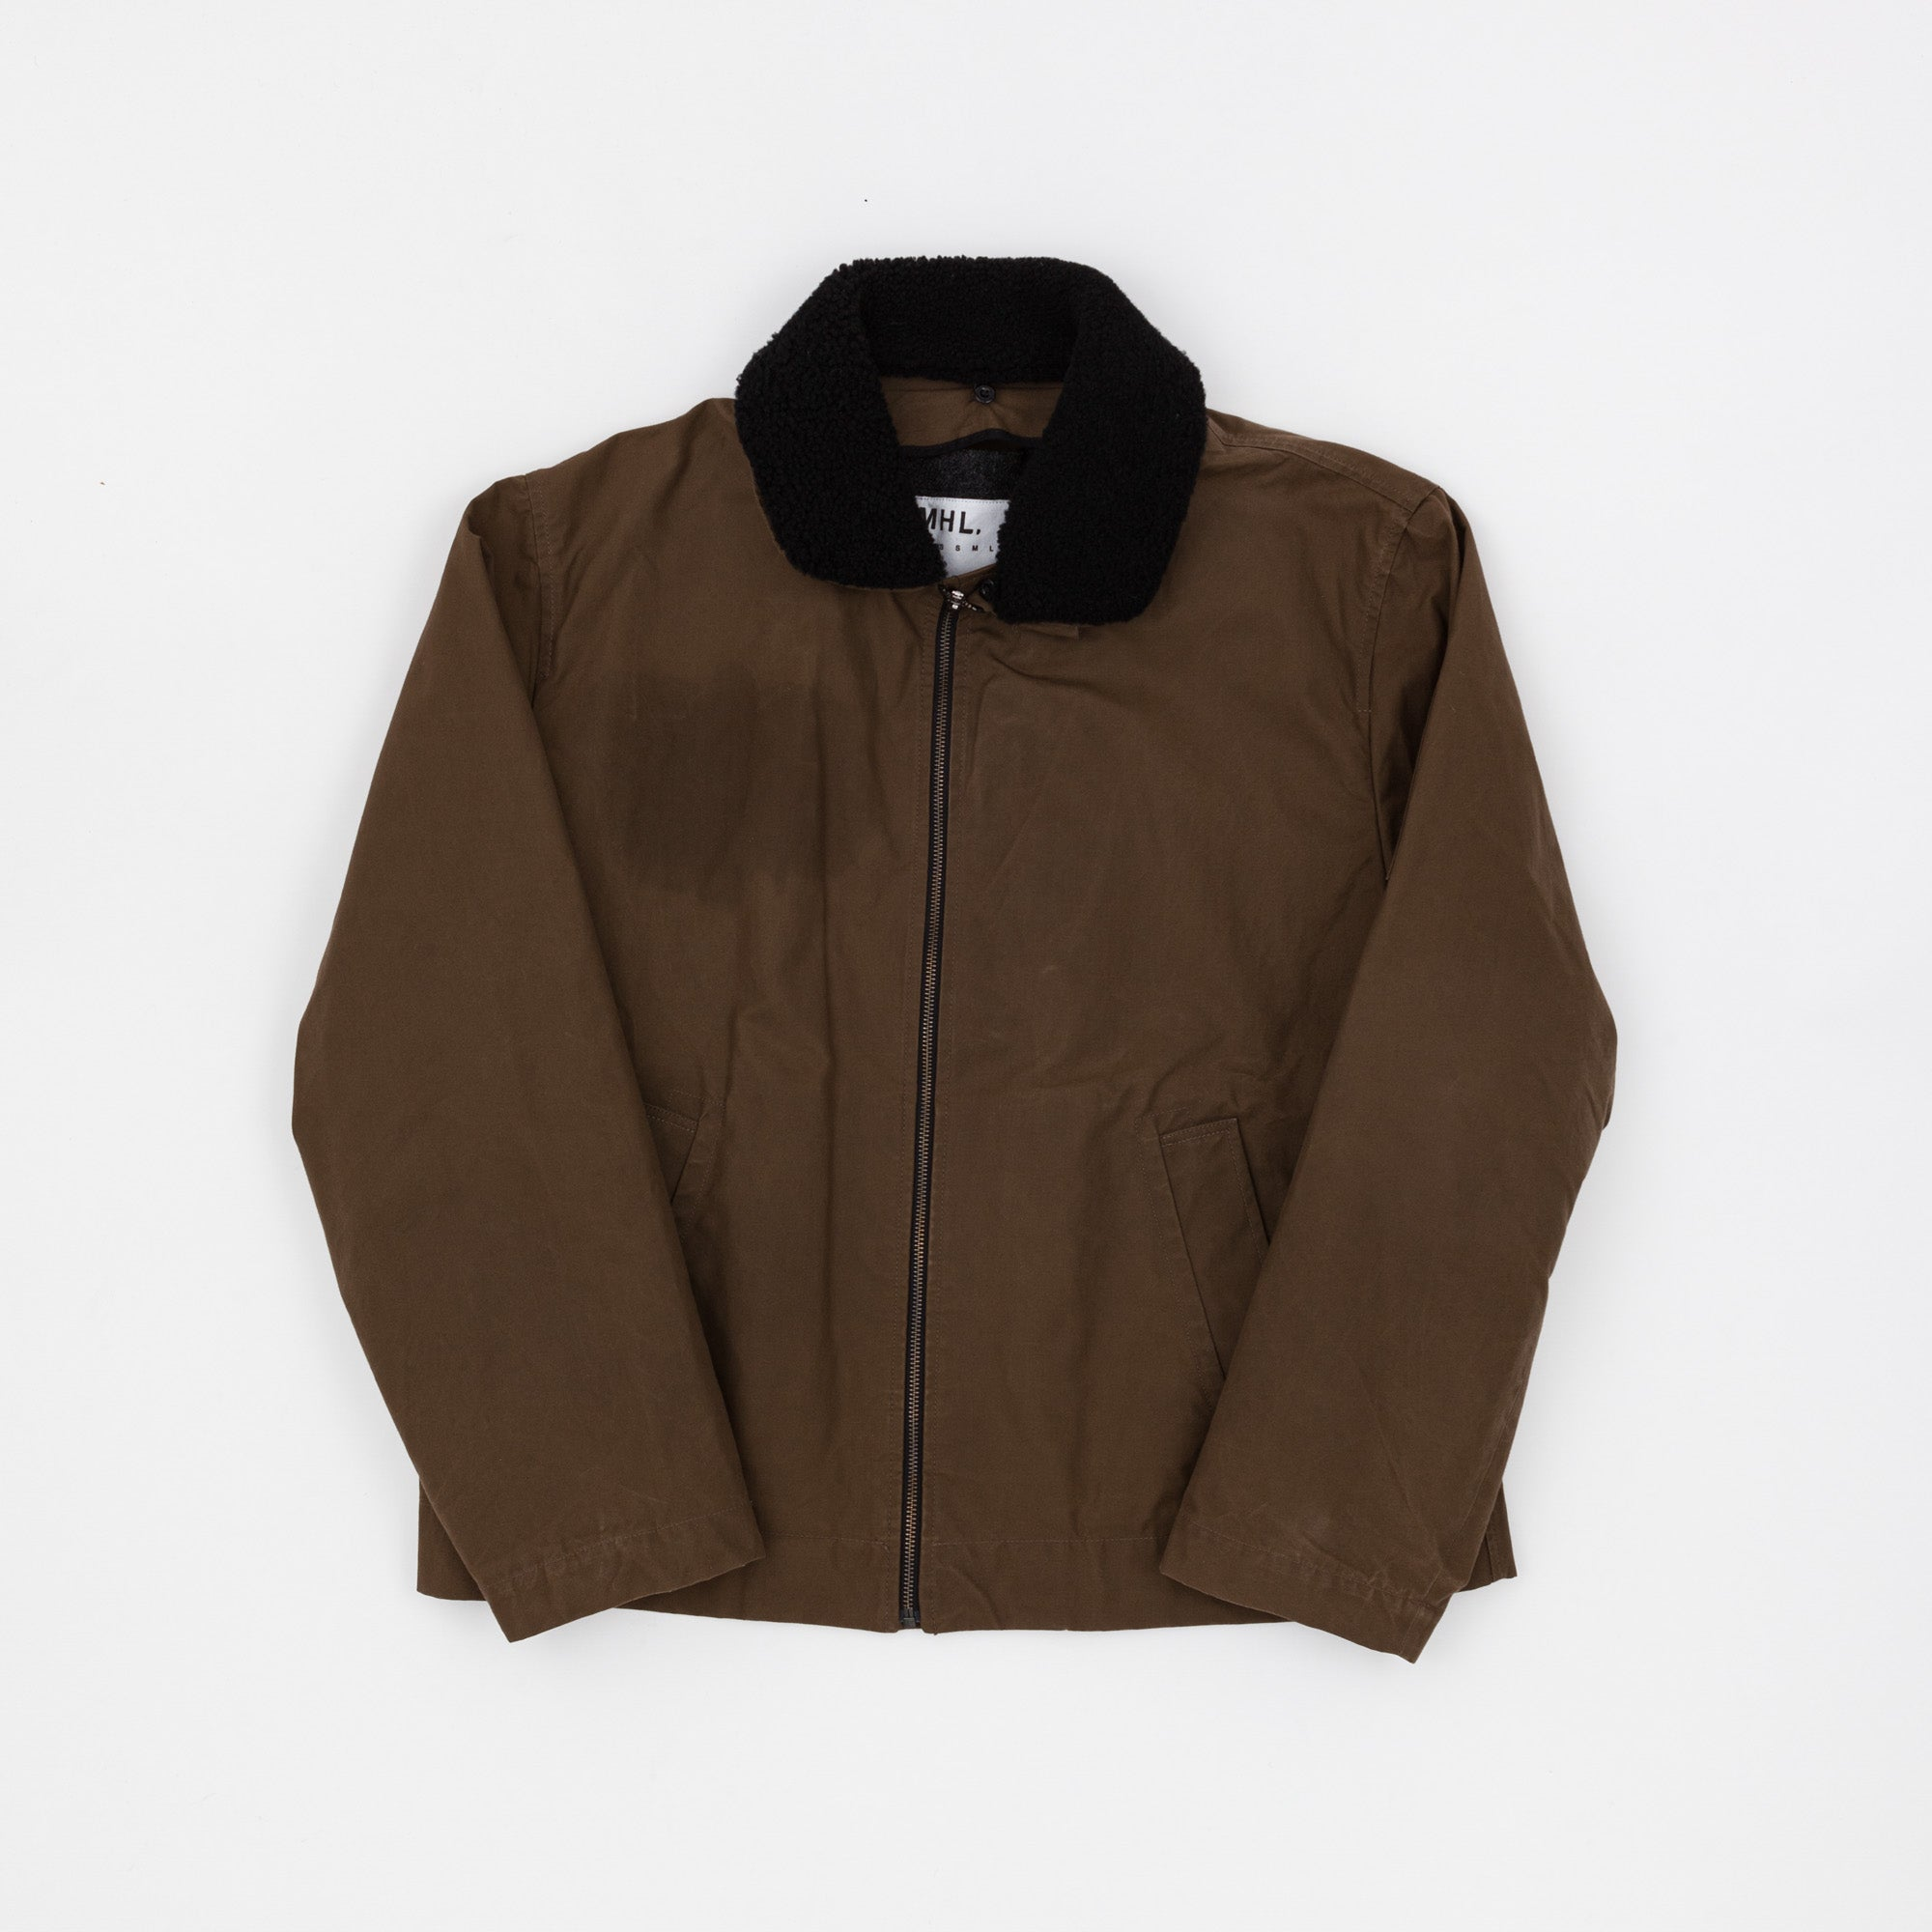 MHL Deck Jacket